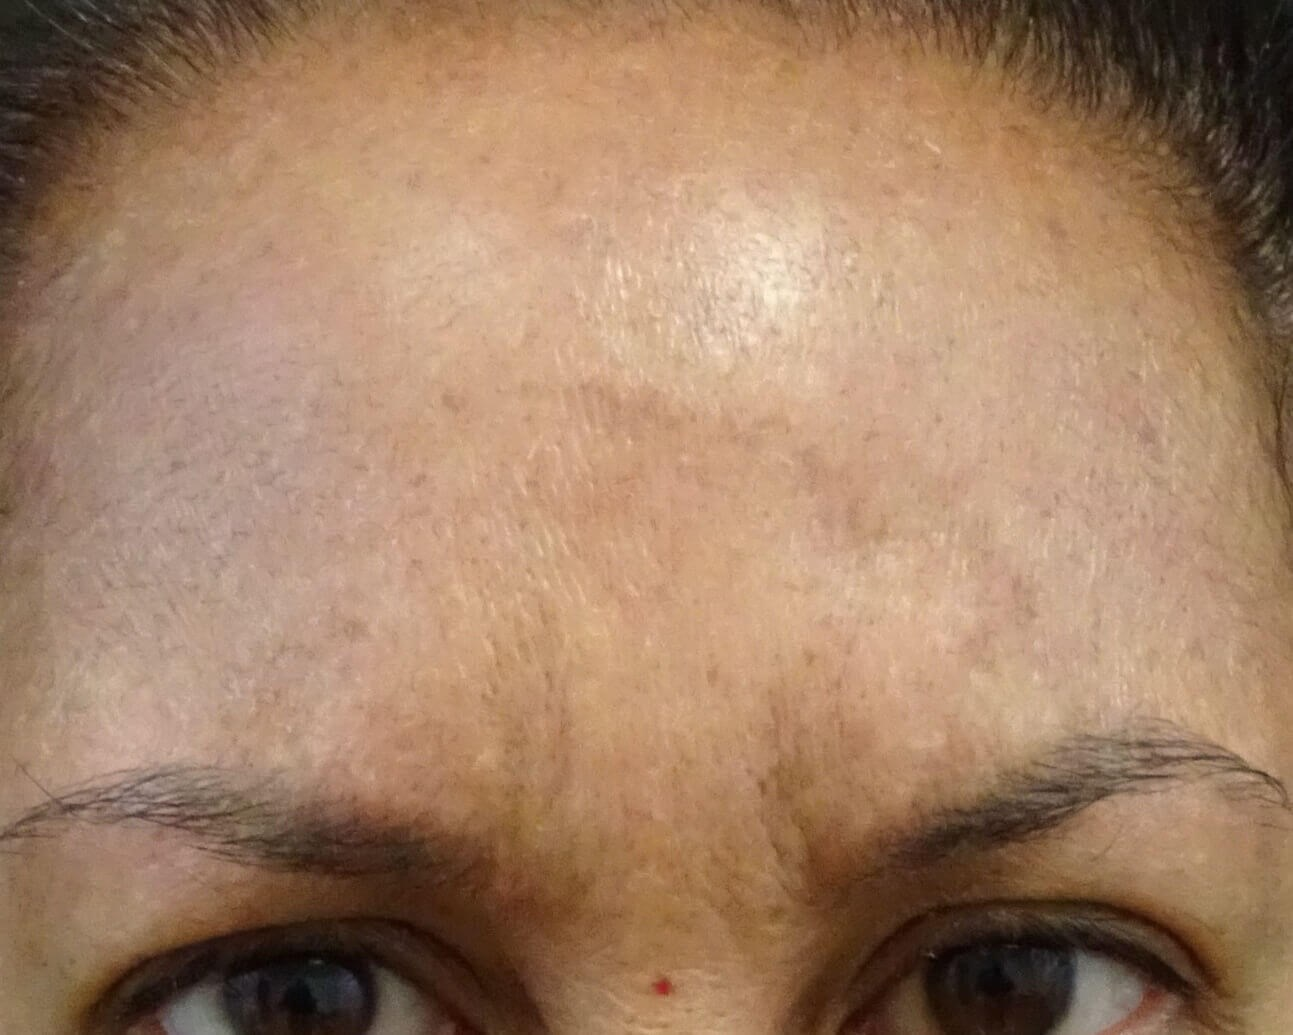 Botox Las Vegas - frown lines After Botox